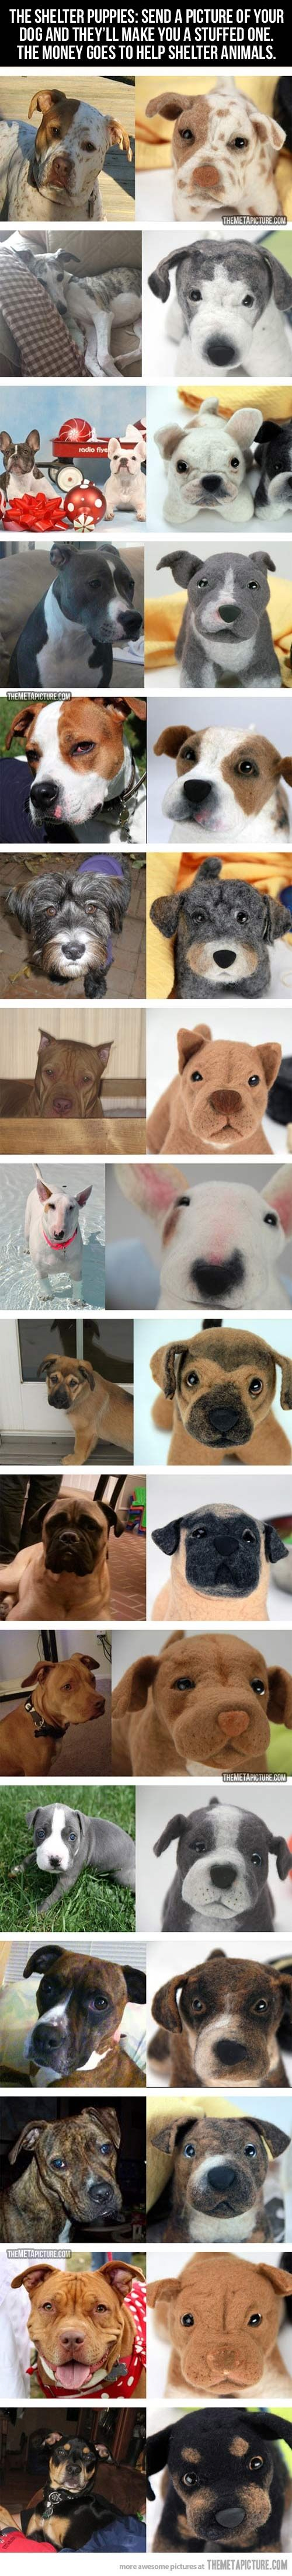 images about so cute on Pinterest American bullies Kittens